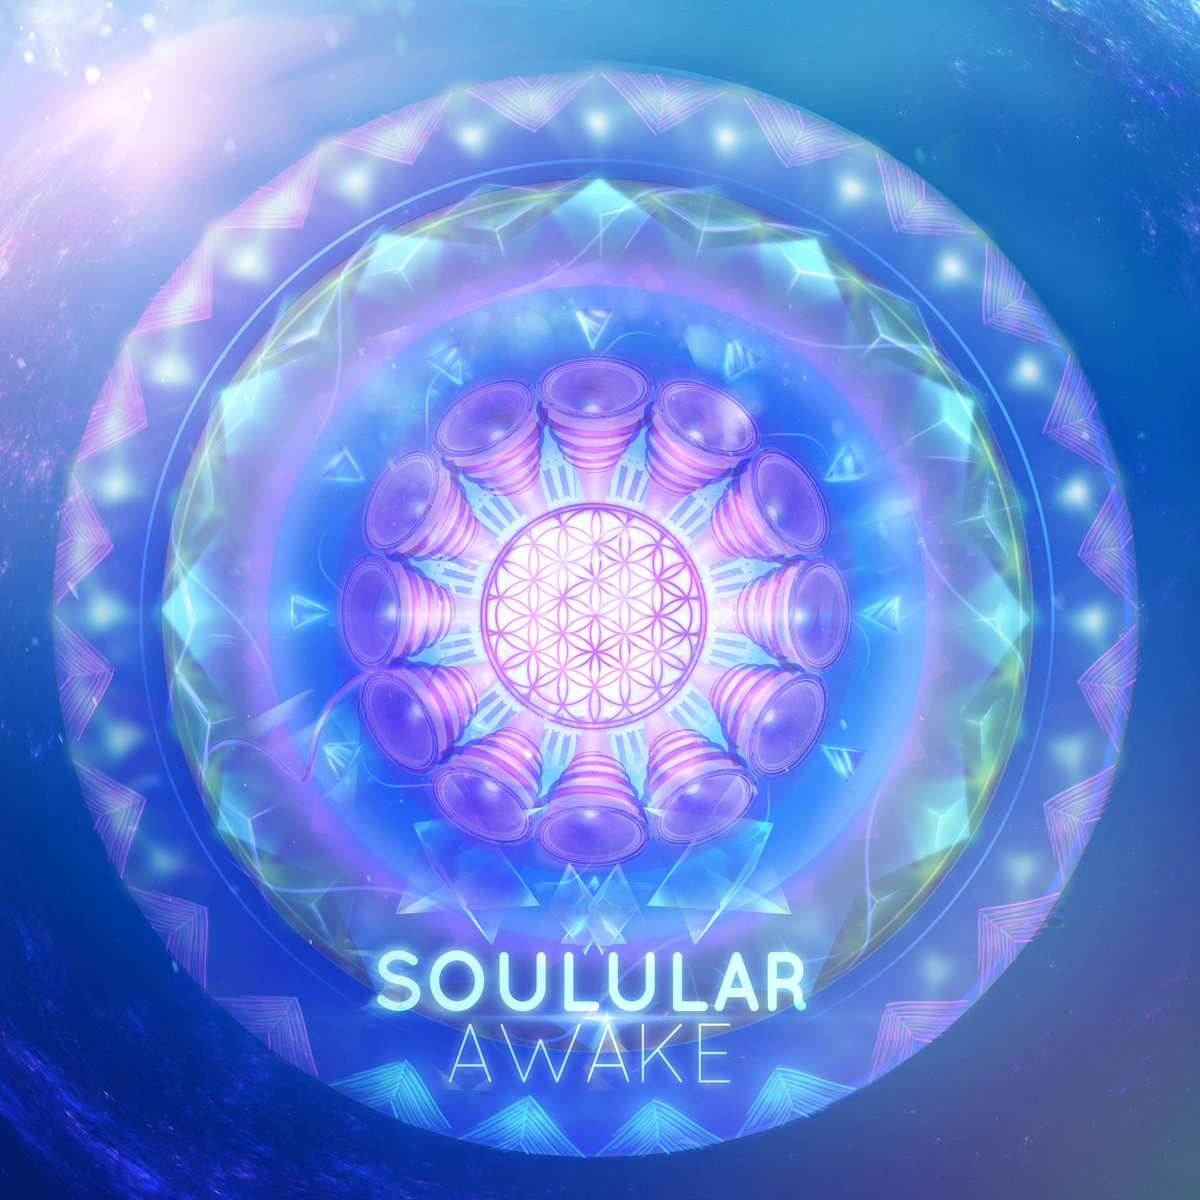 Soulular - Laugh @ 'AWAKE' album (los angeles, chill)